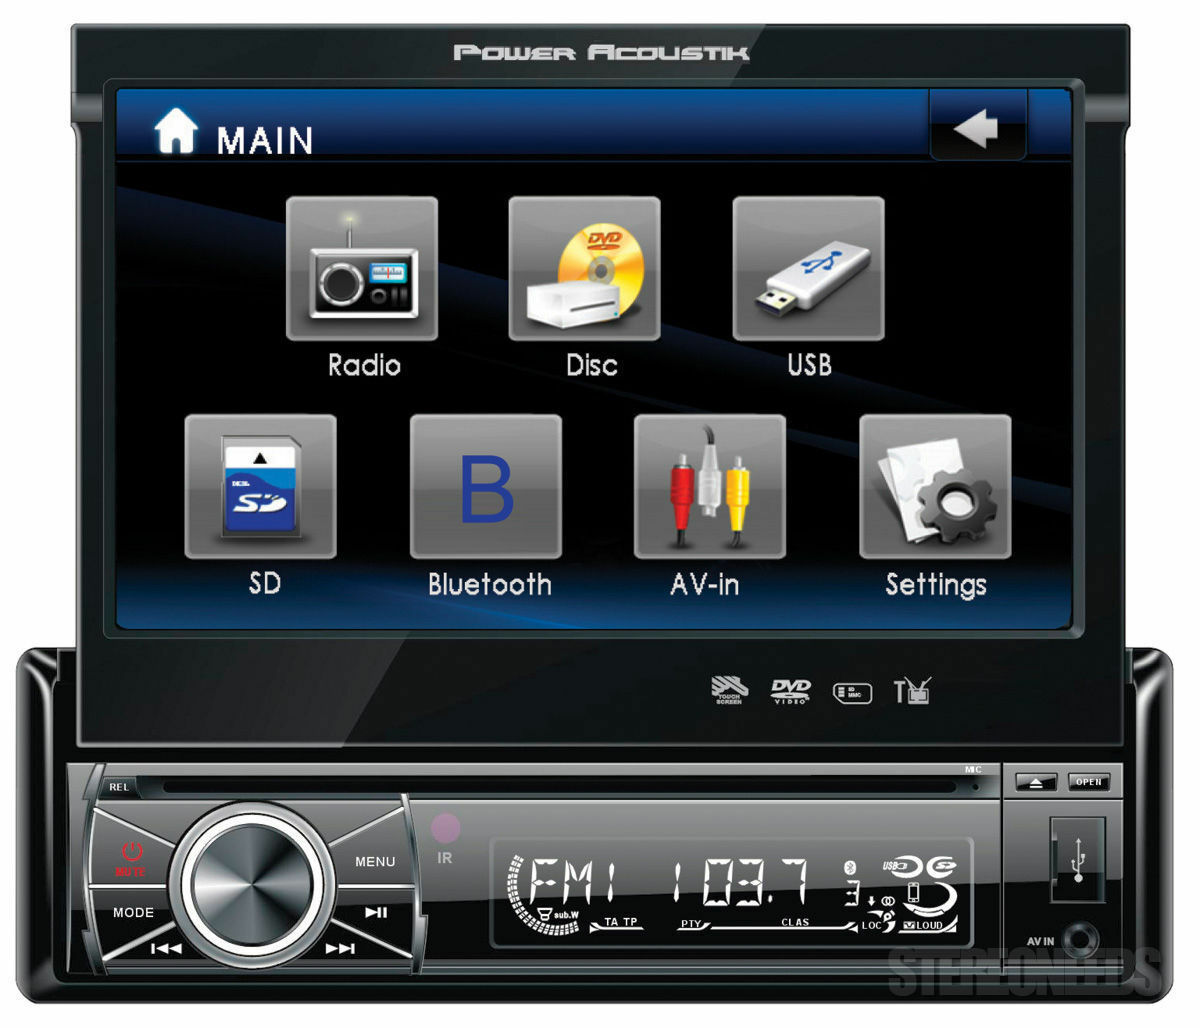 s l1600 power acoustik video in dash units without gps ebay Power Acoustik PD- 710 at bayanpartner.co